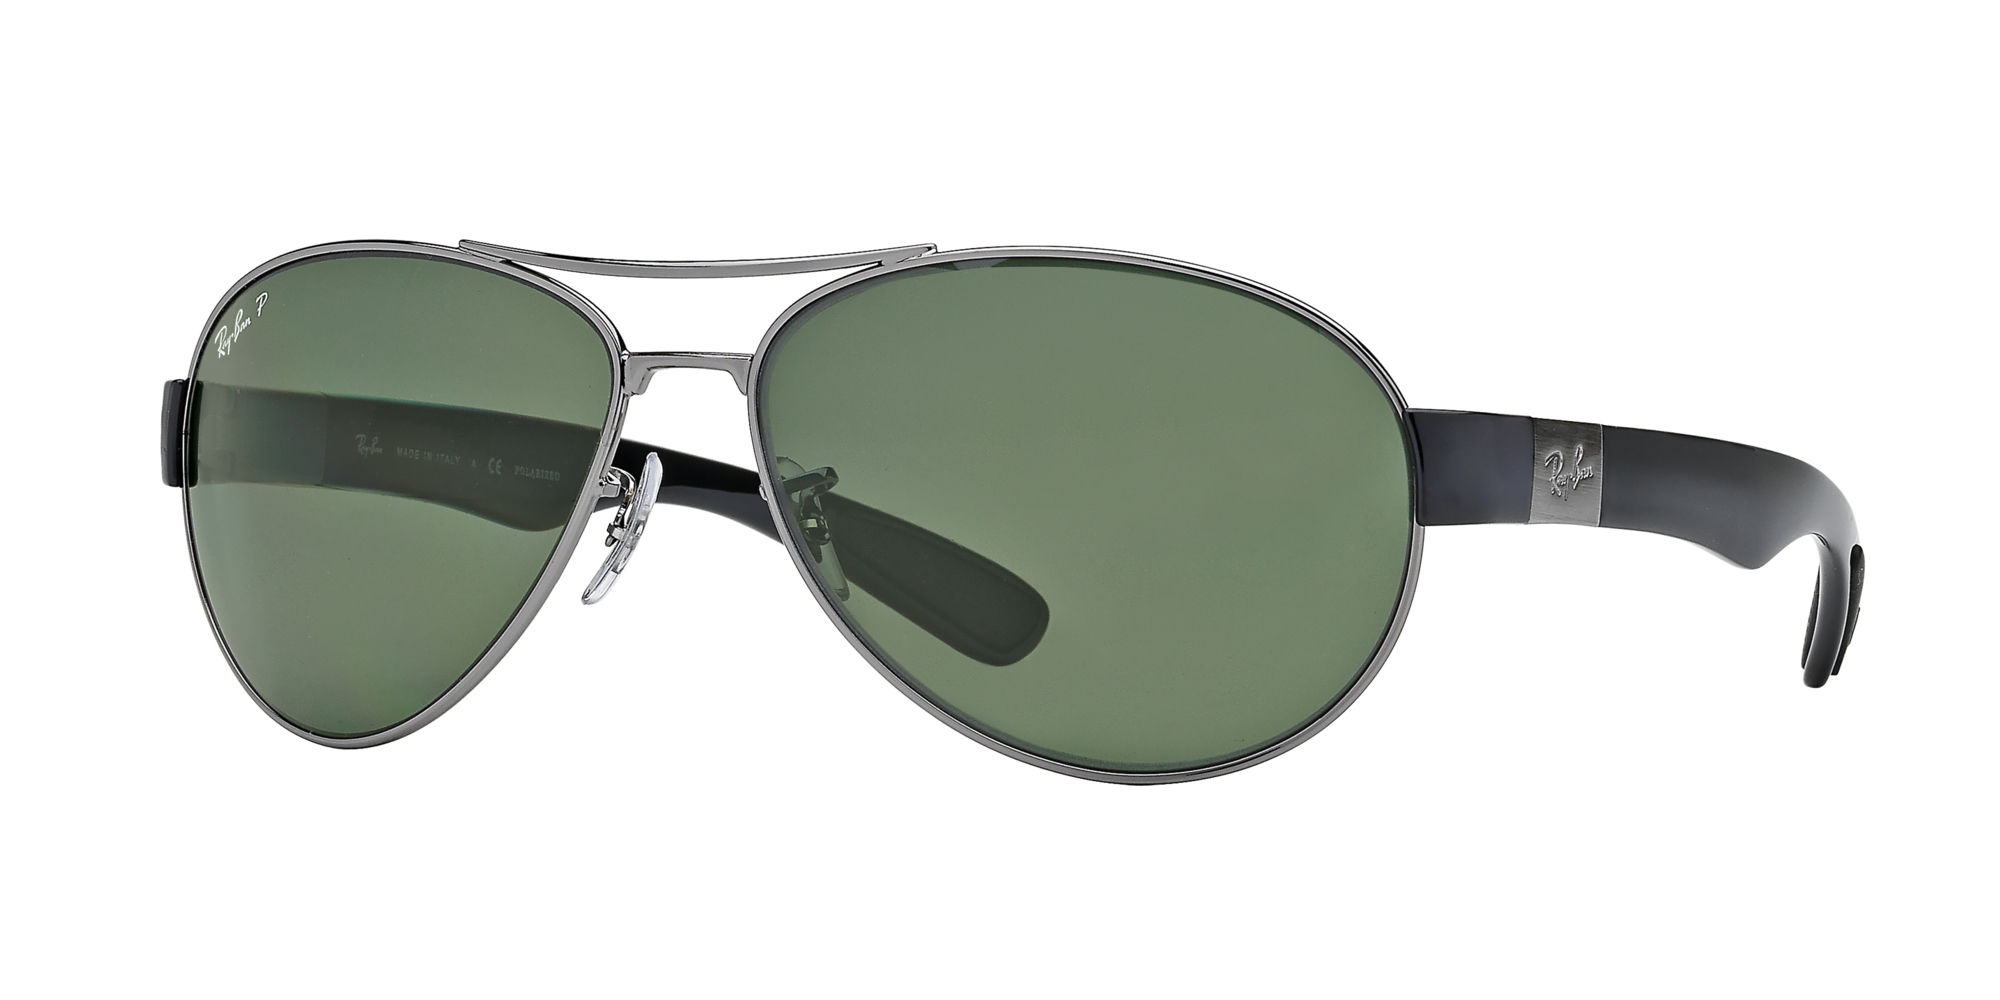 Ray-Ban Men Oval Sunglasses 0RB3509004/9A63 - 0RB3509004/9A63 66 - 15